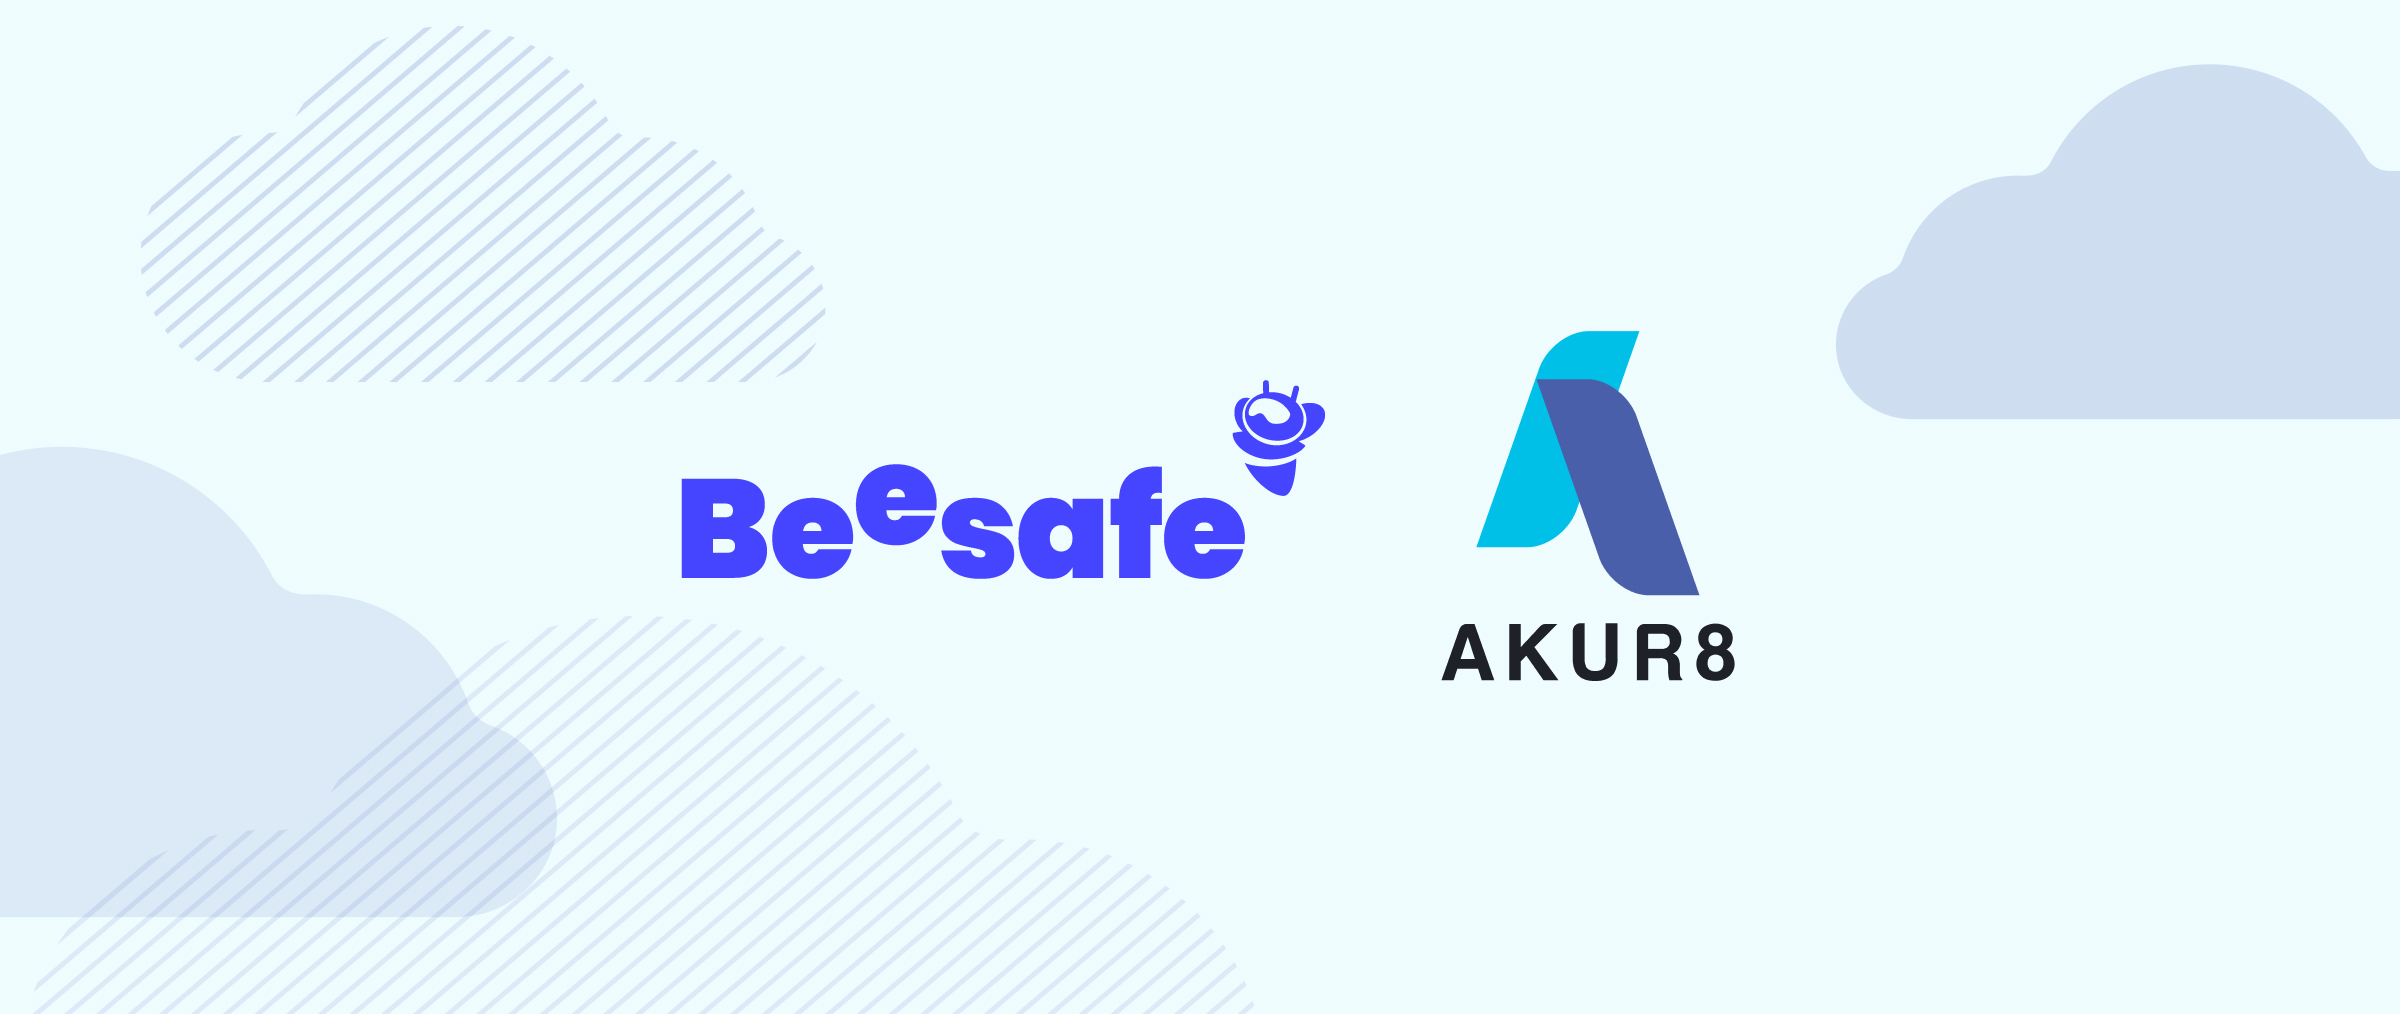 Beesafe and Compensa, part of VIG Poland, collaborate with Akur8 to transform their pricing process